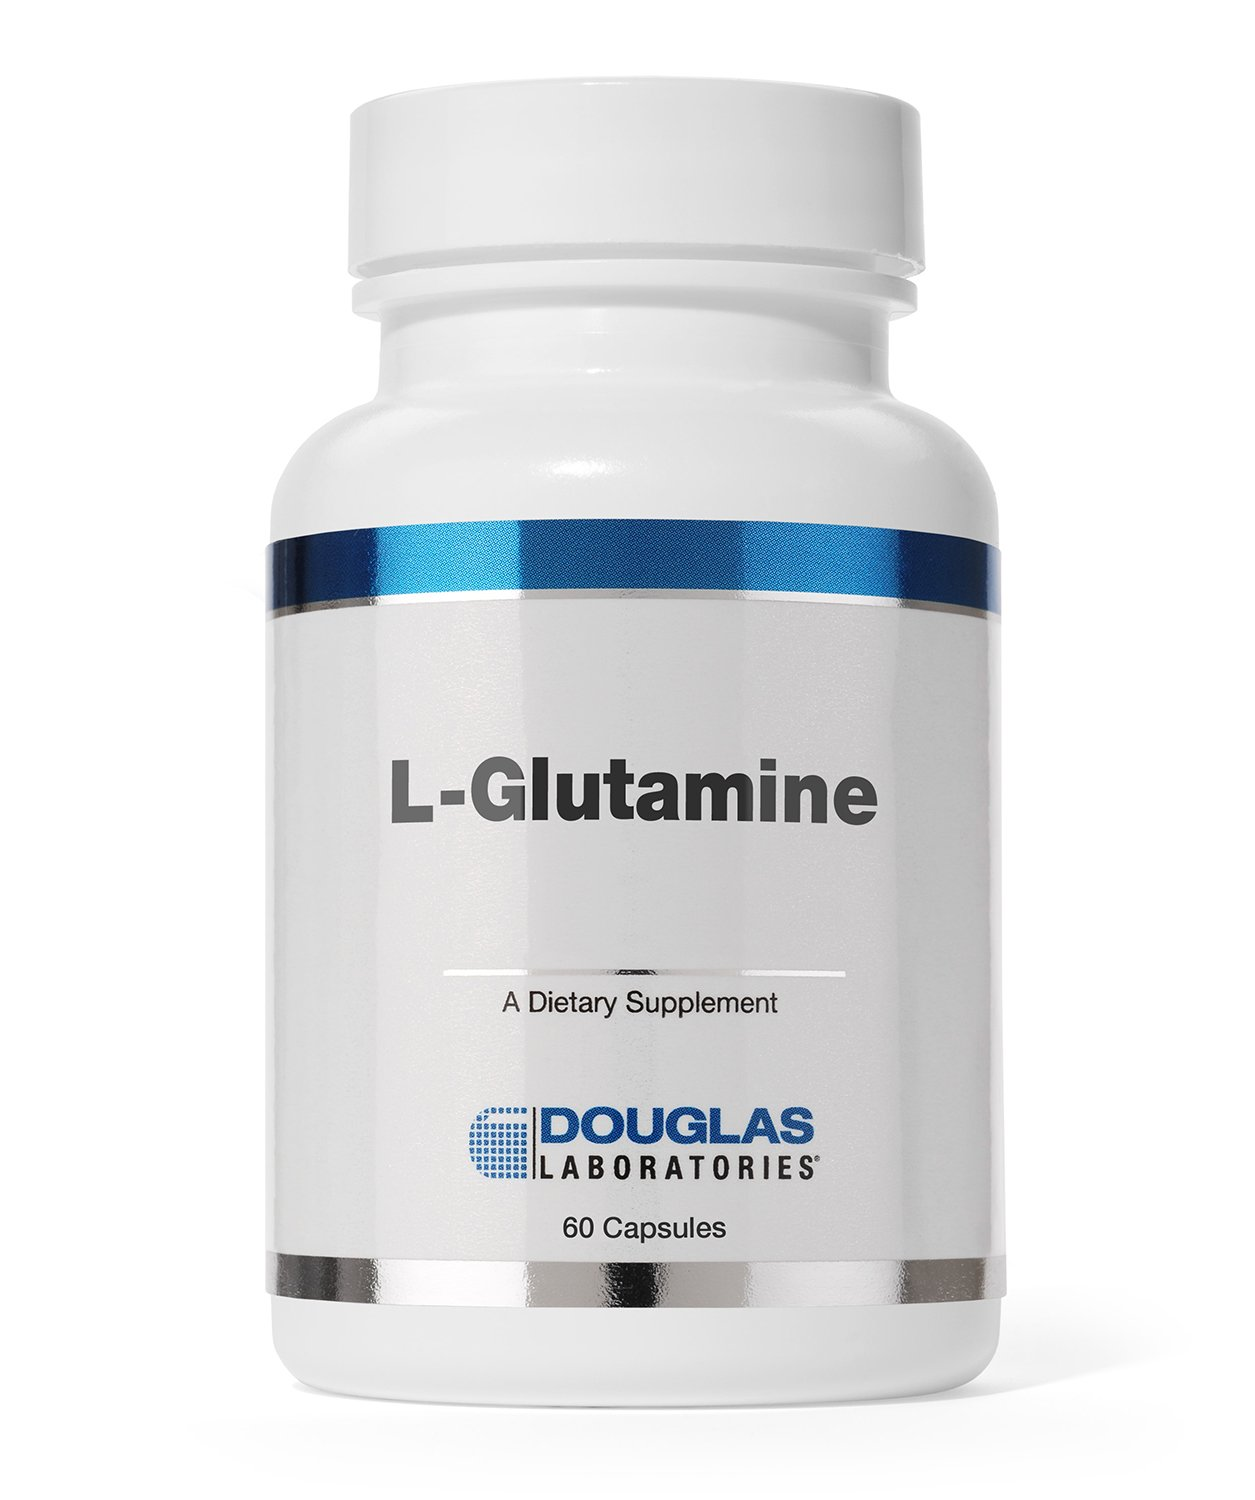 Douglas Laboratories® - L-Glutamine - Supports Structure and Function of the Gastrointestinal (GI) Tract and Immune System* - 60 Capsules